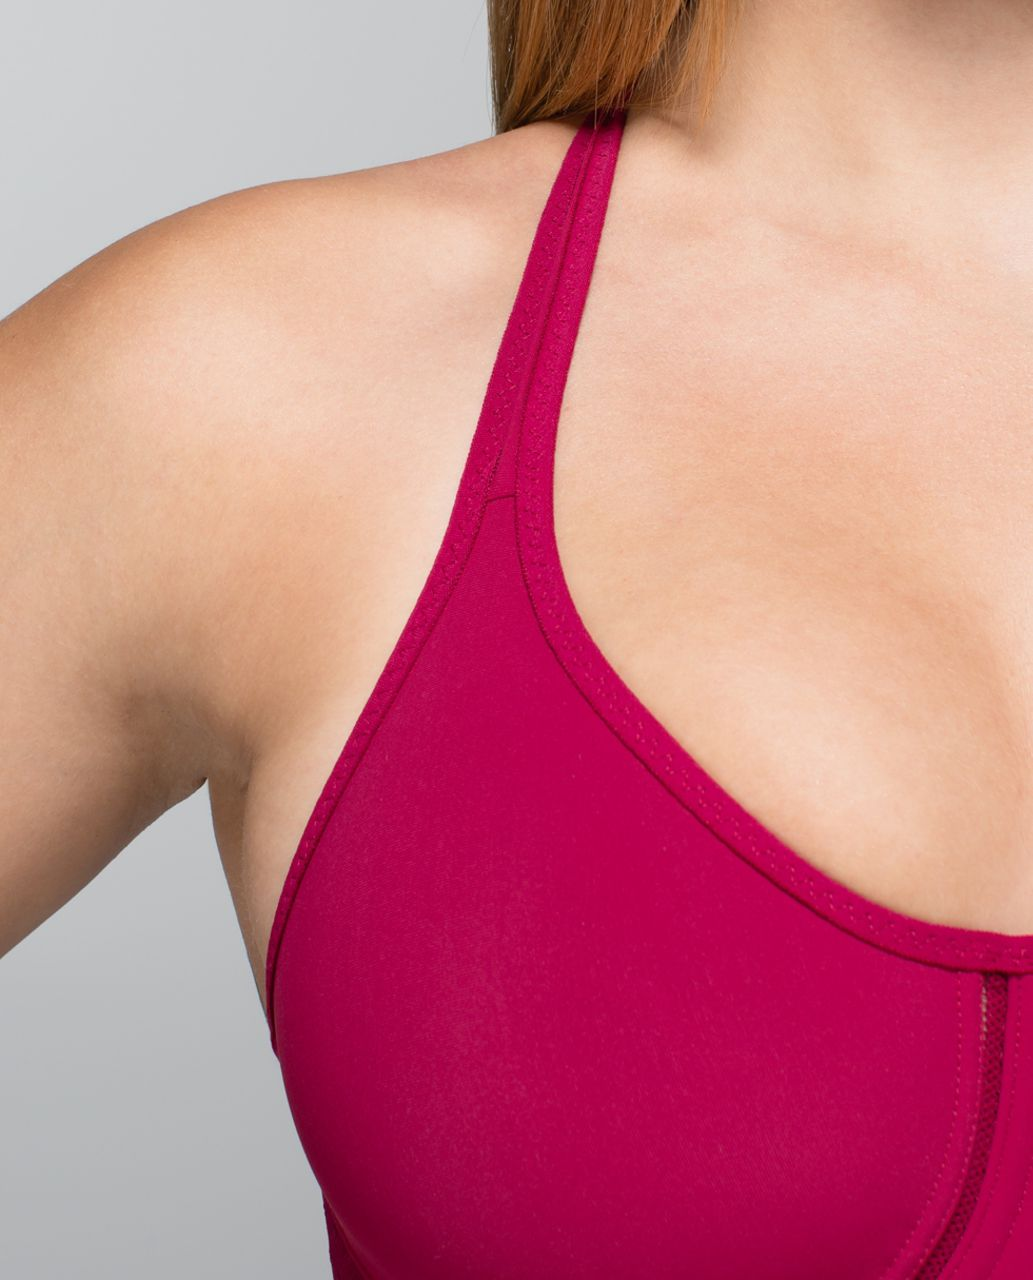 Lululemon Boob Wired Bra - Bumble Berry